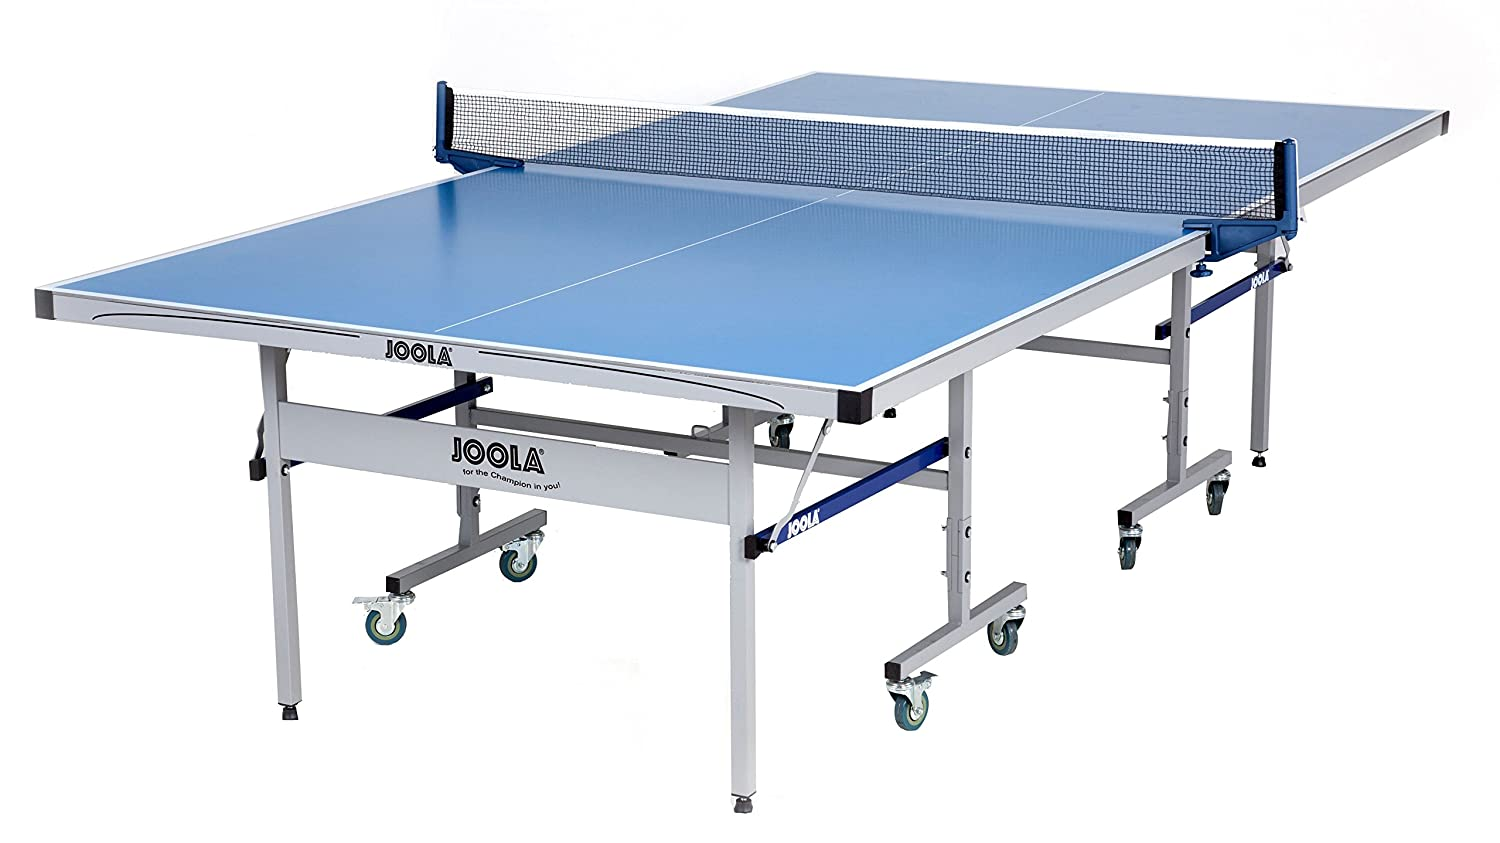 JOOLA NOVA Outdoor Table Tennis Table – Best Joola Ping-pong Table For Outdoors